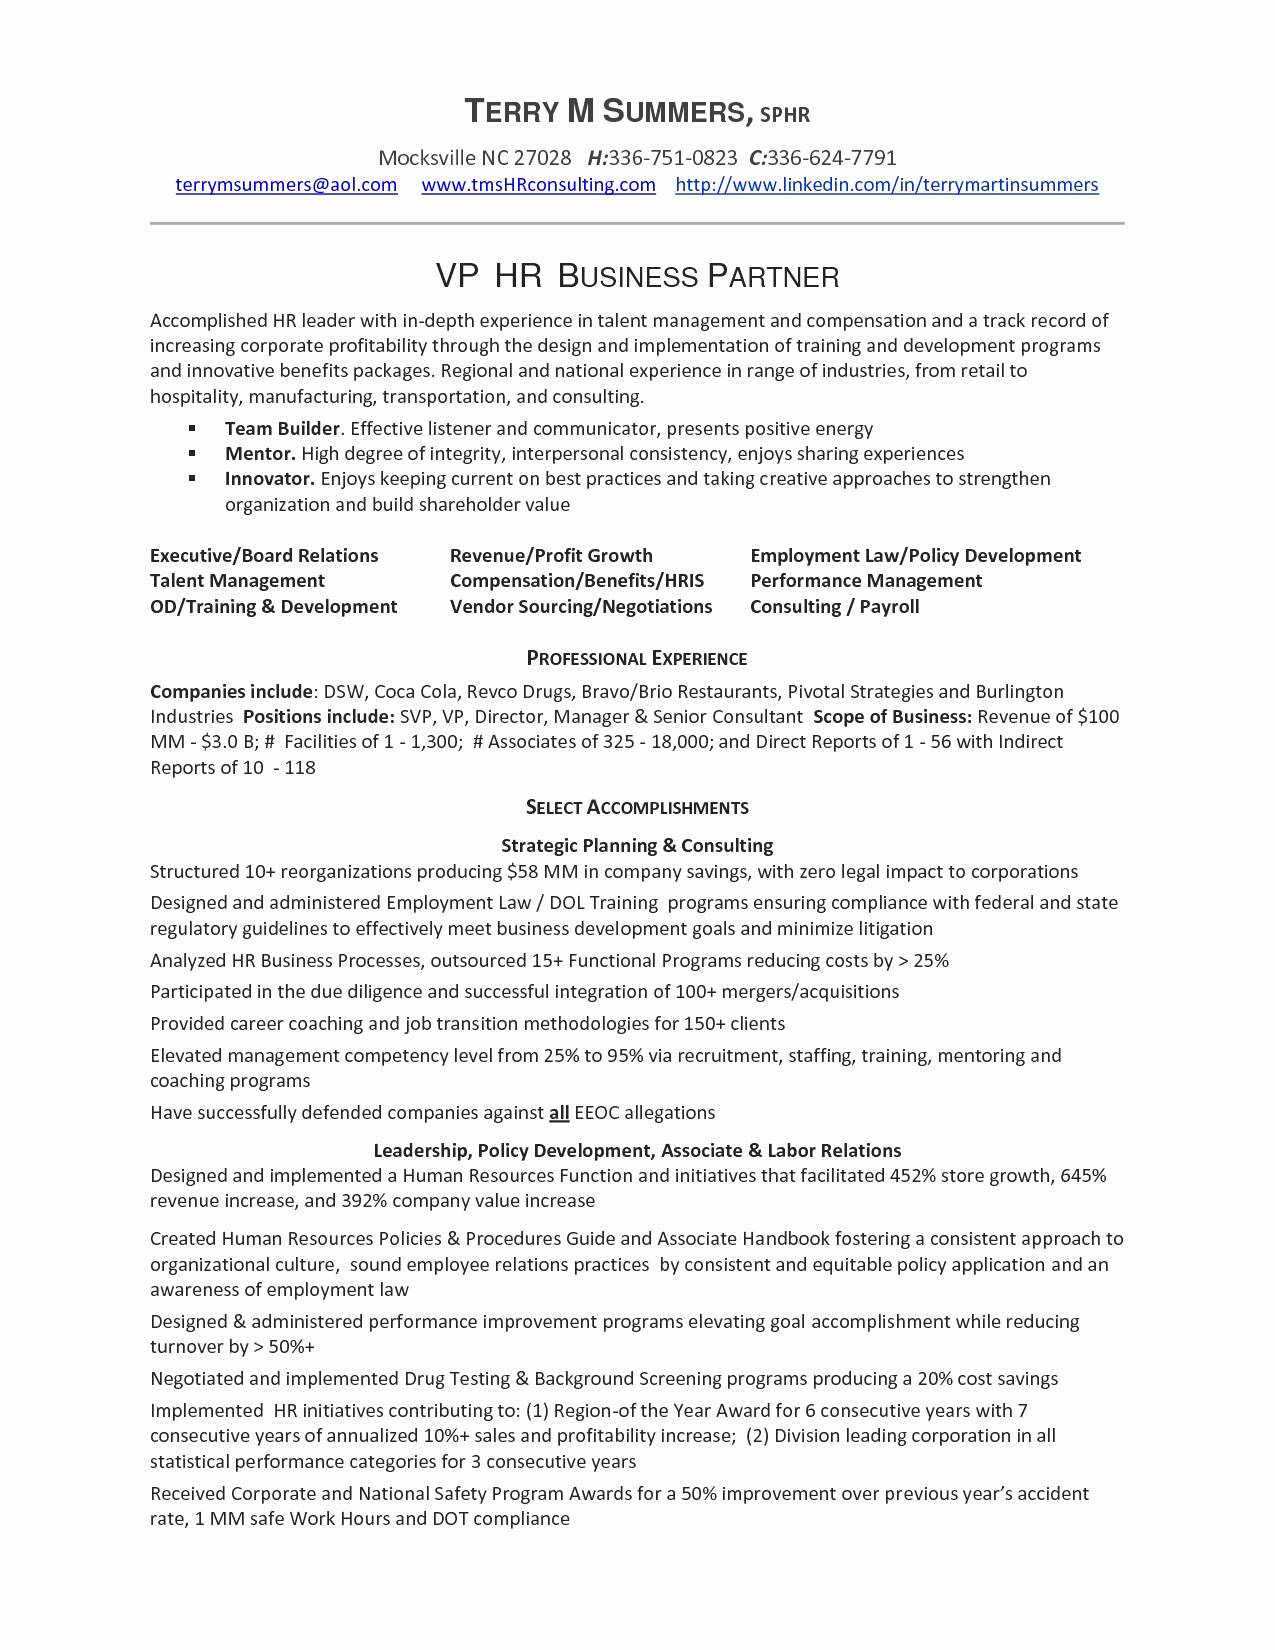 Writing A Business Letter Template - Legal Advice Disclaimer Template Best Resume and Cover Letter